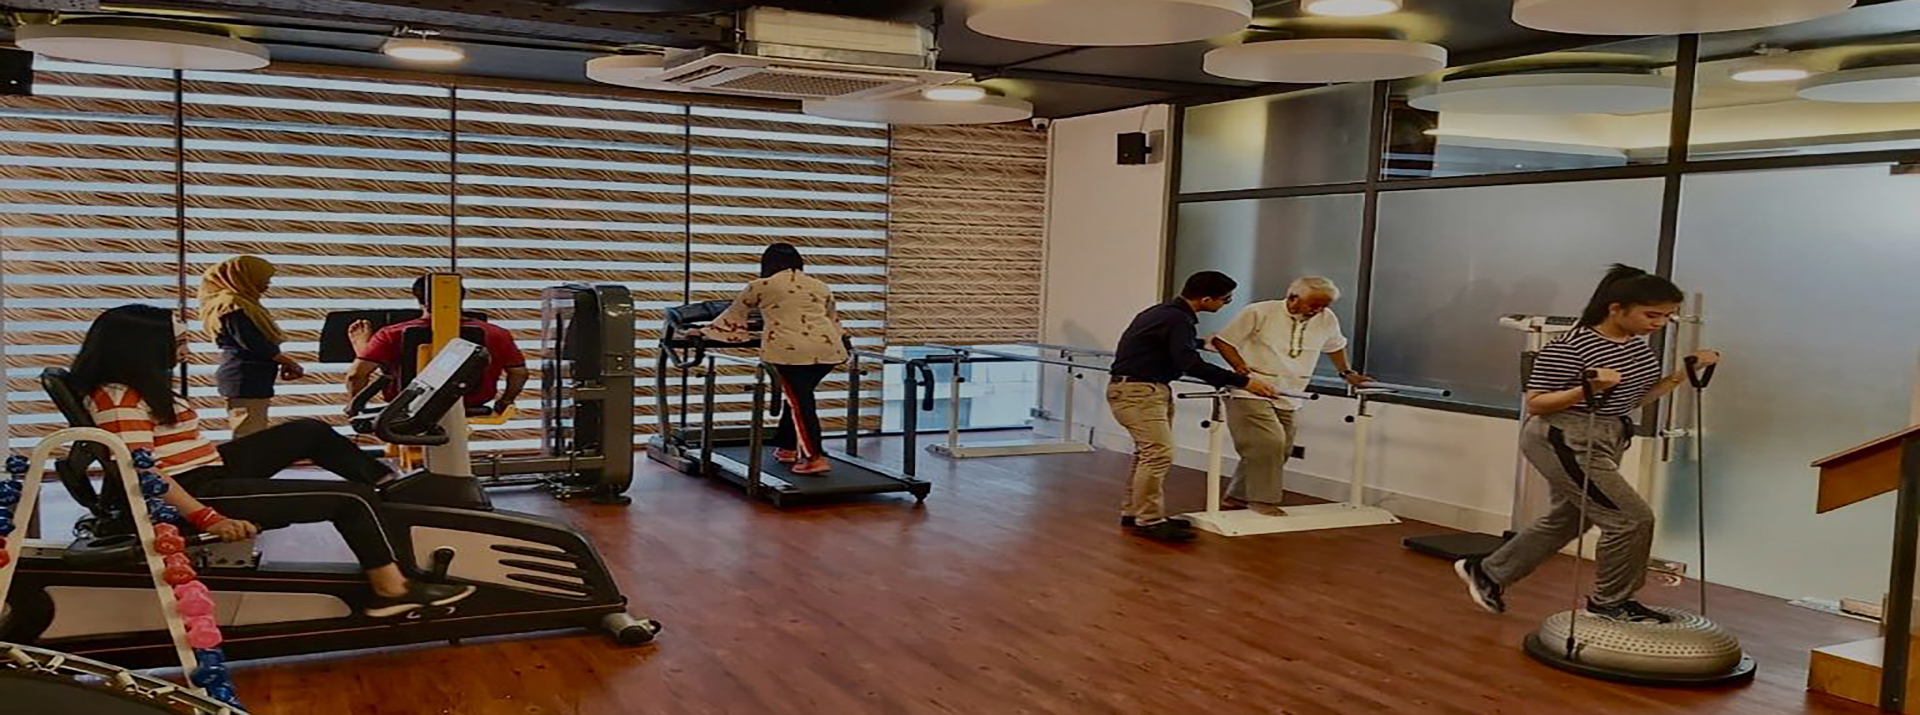 American Physiotherapy Center